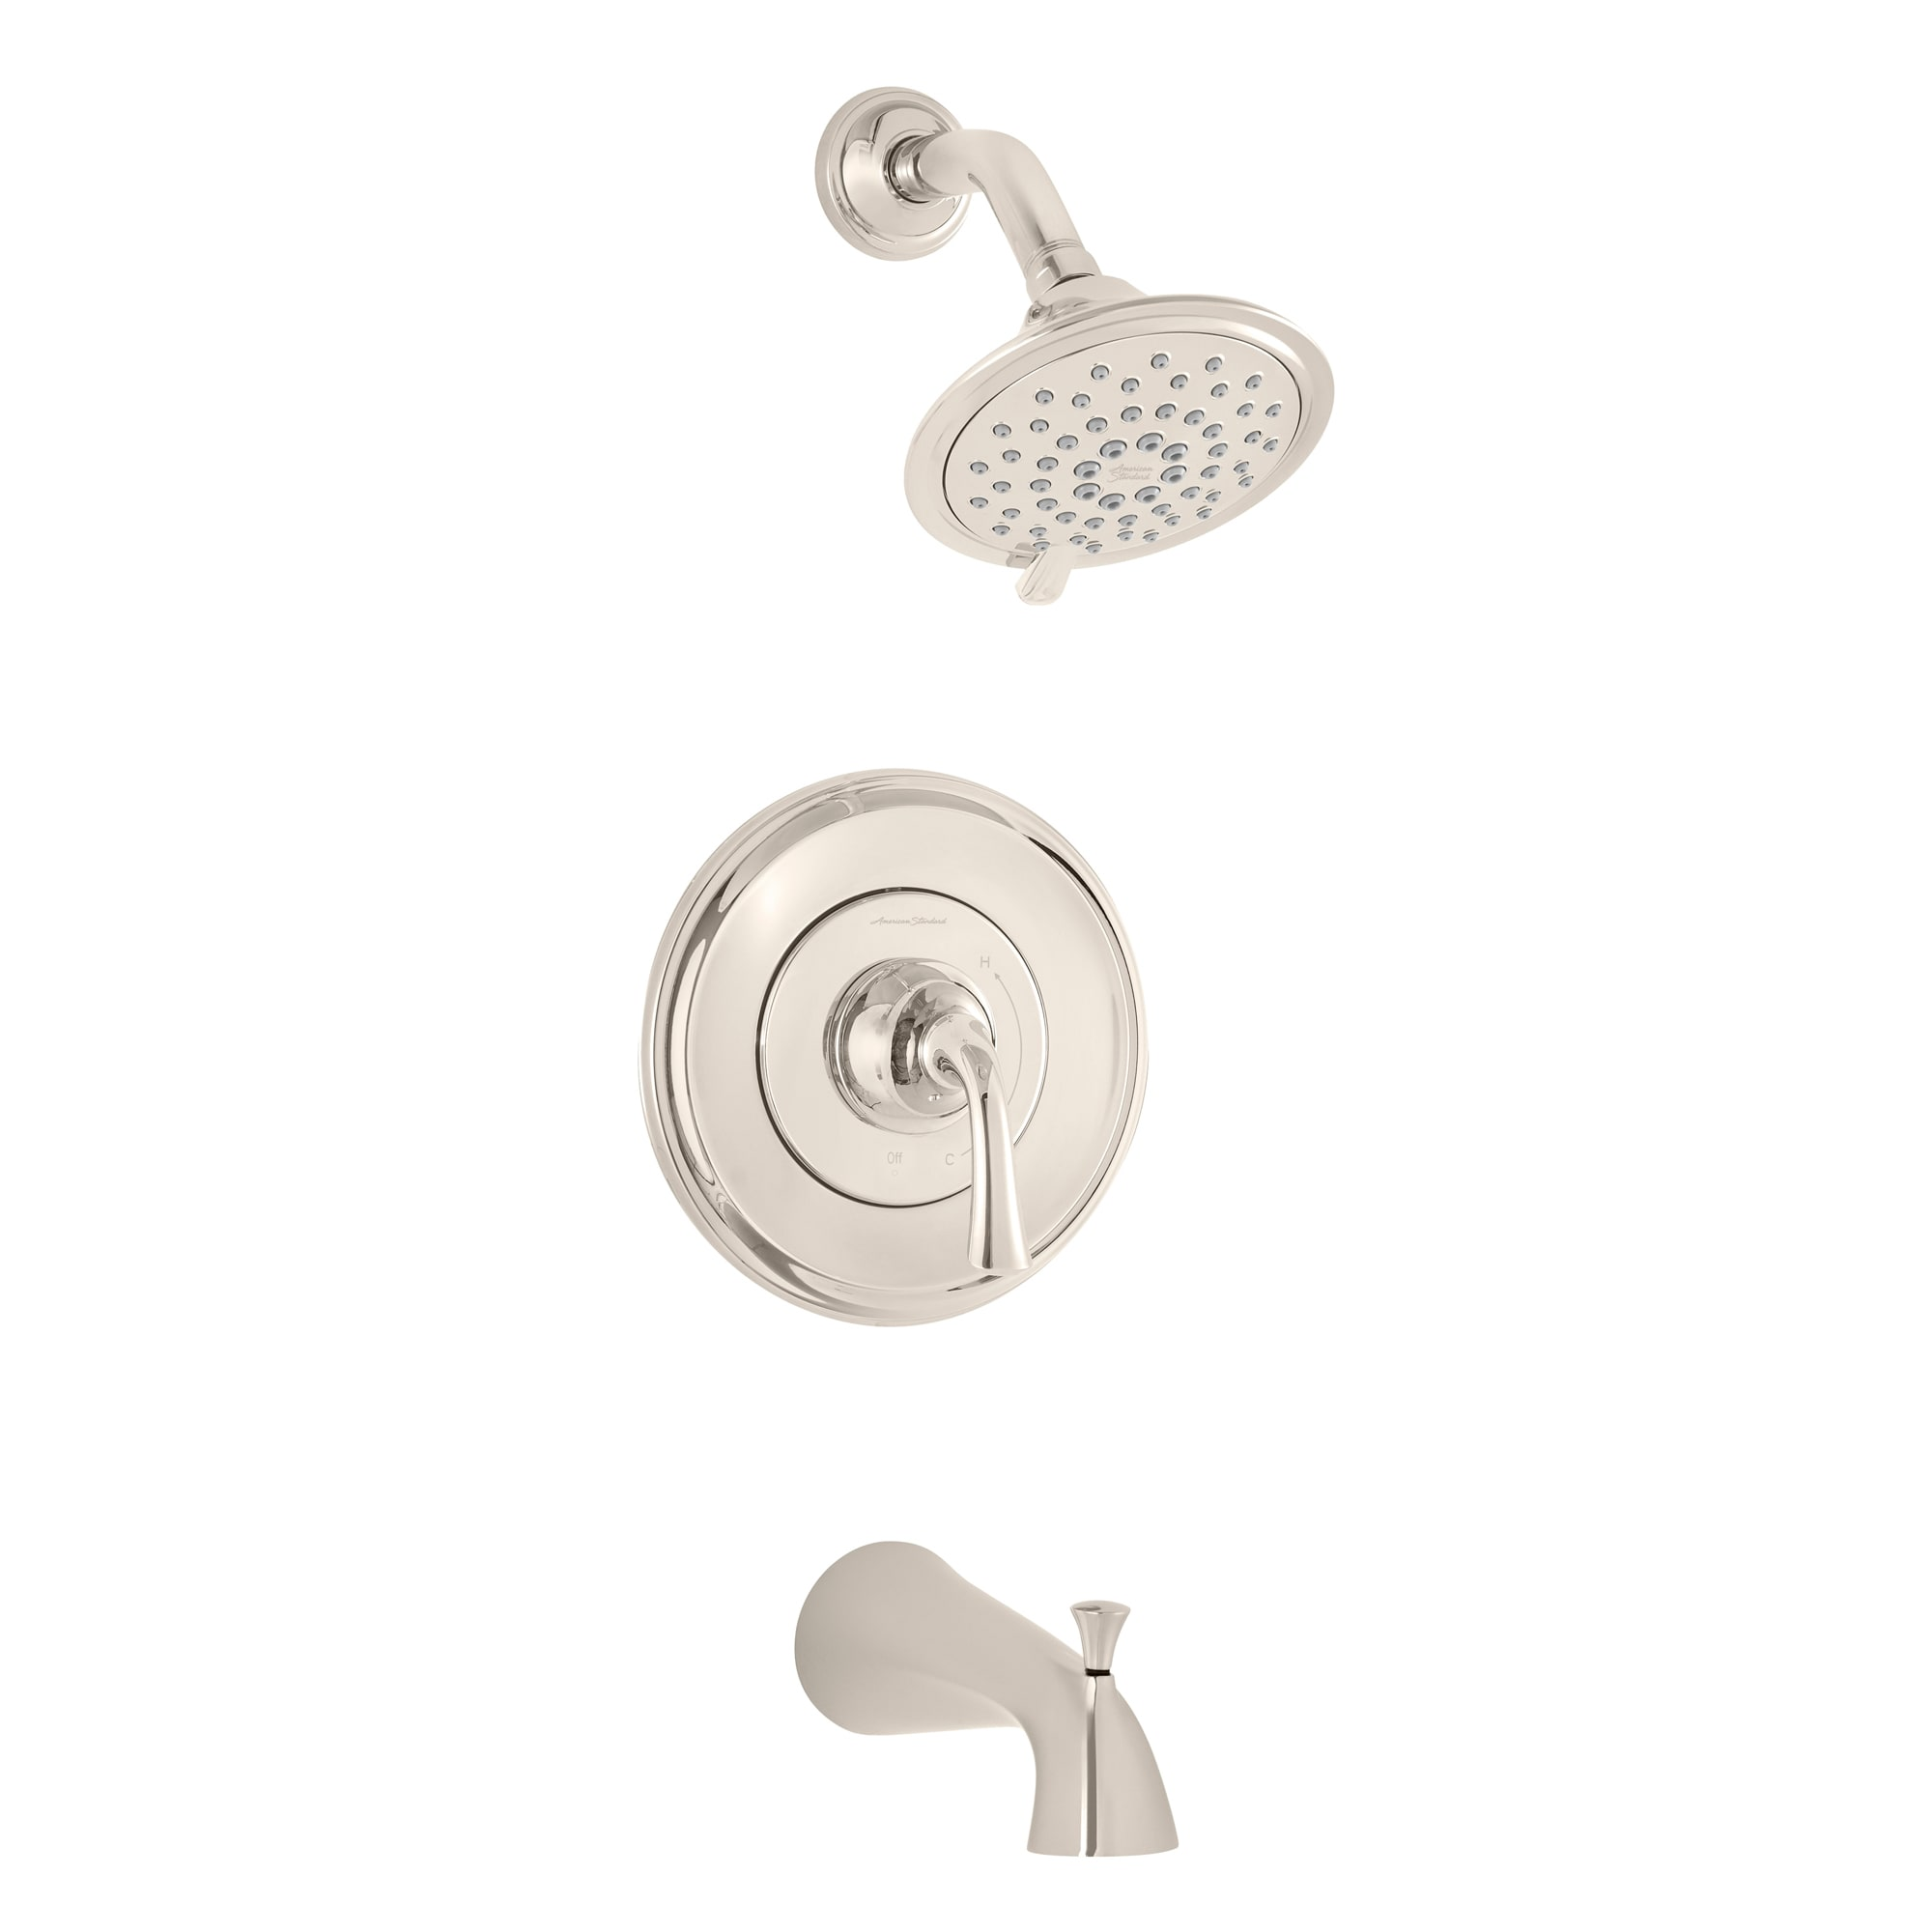 American Standard Tu106502 013 Polished Nickel Pvd Patience Tub And Shower Trim Package With 2 5 Gpm Multi Function Shower Head Faucet Com